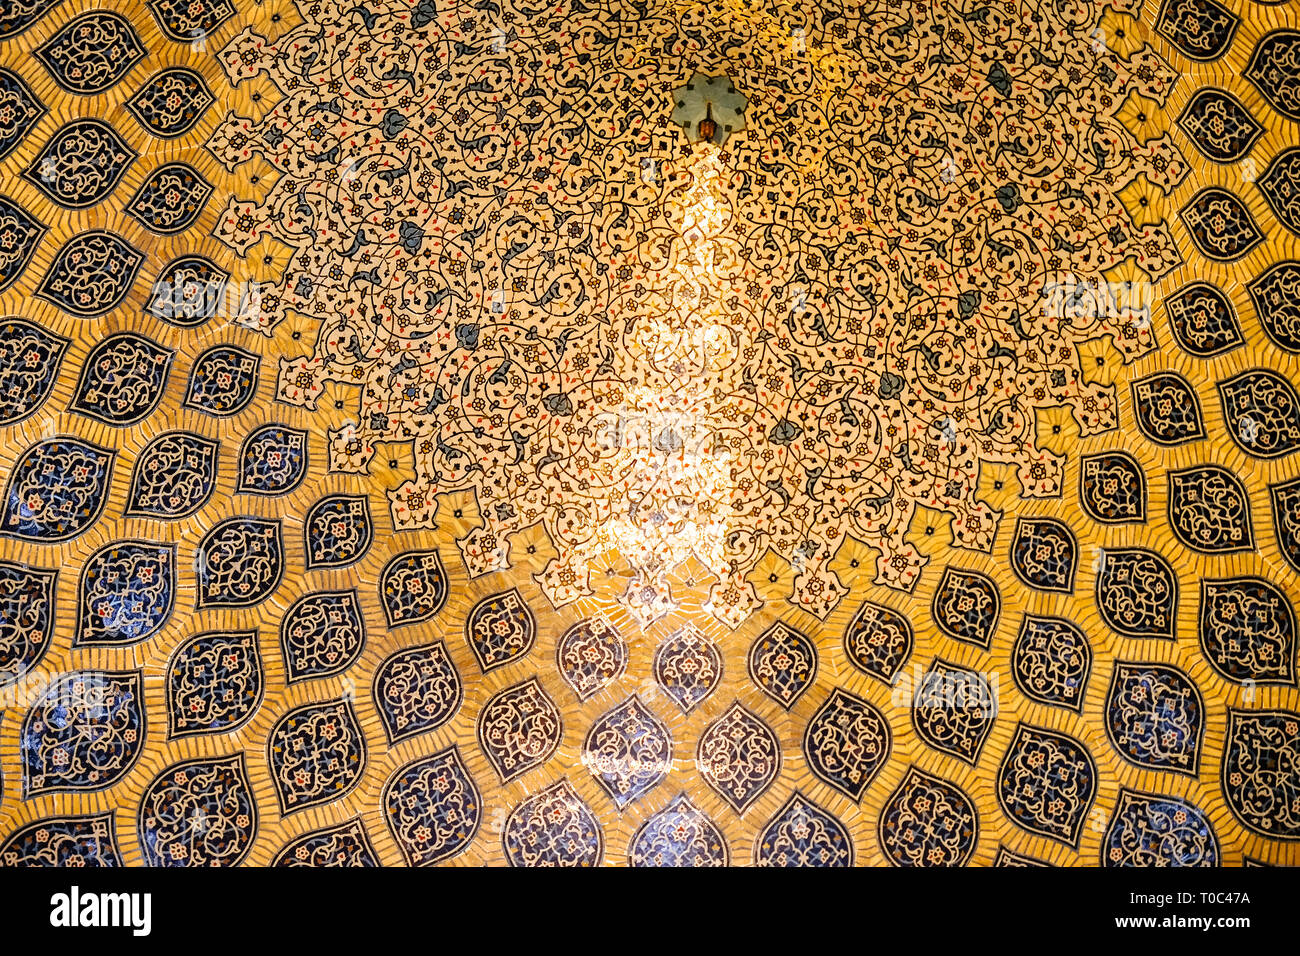 Isfahan, Iran. October 30, 2016 : Sun rays scattered to the rings of ornamental bands forming peacock-like shape. Sheikh Lotfollah Mosque. - Stock Image